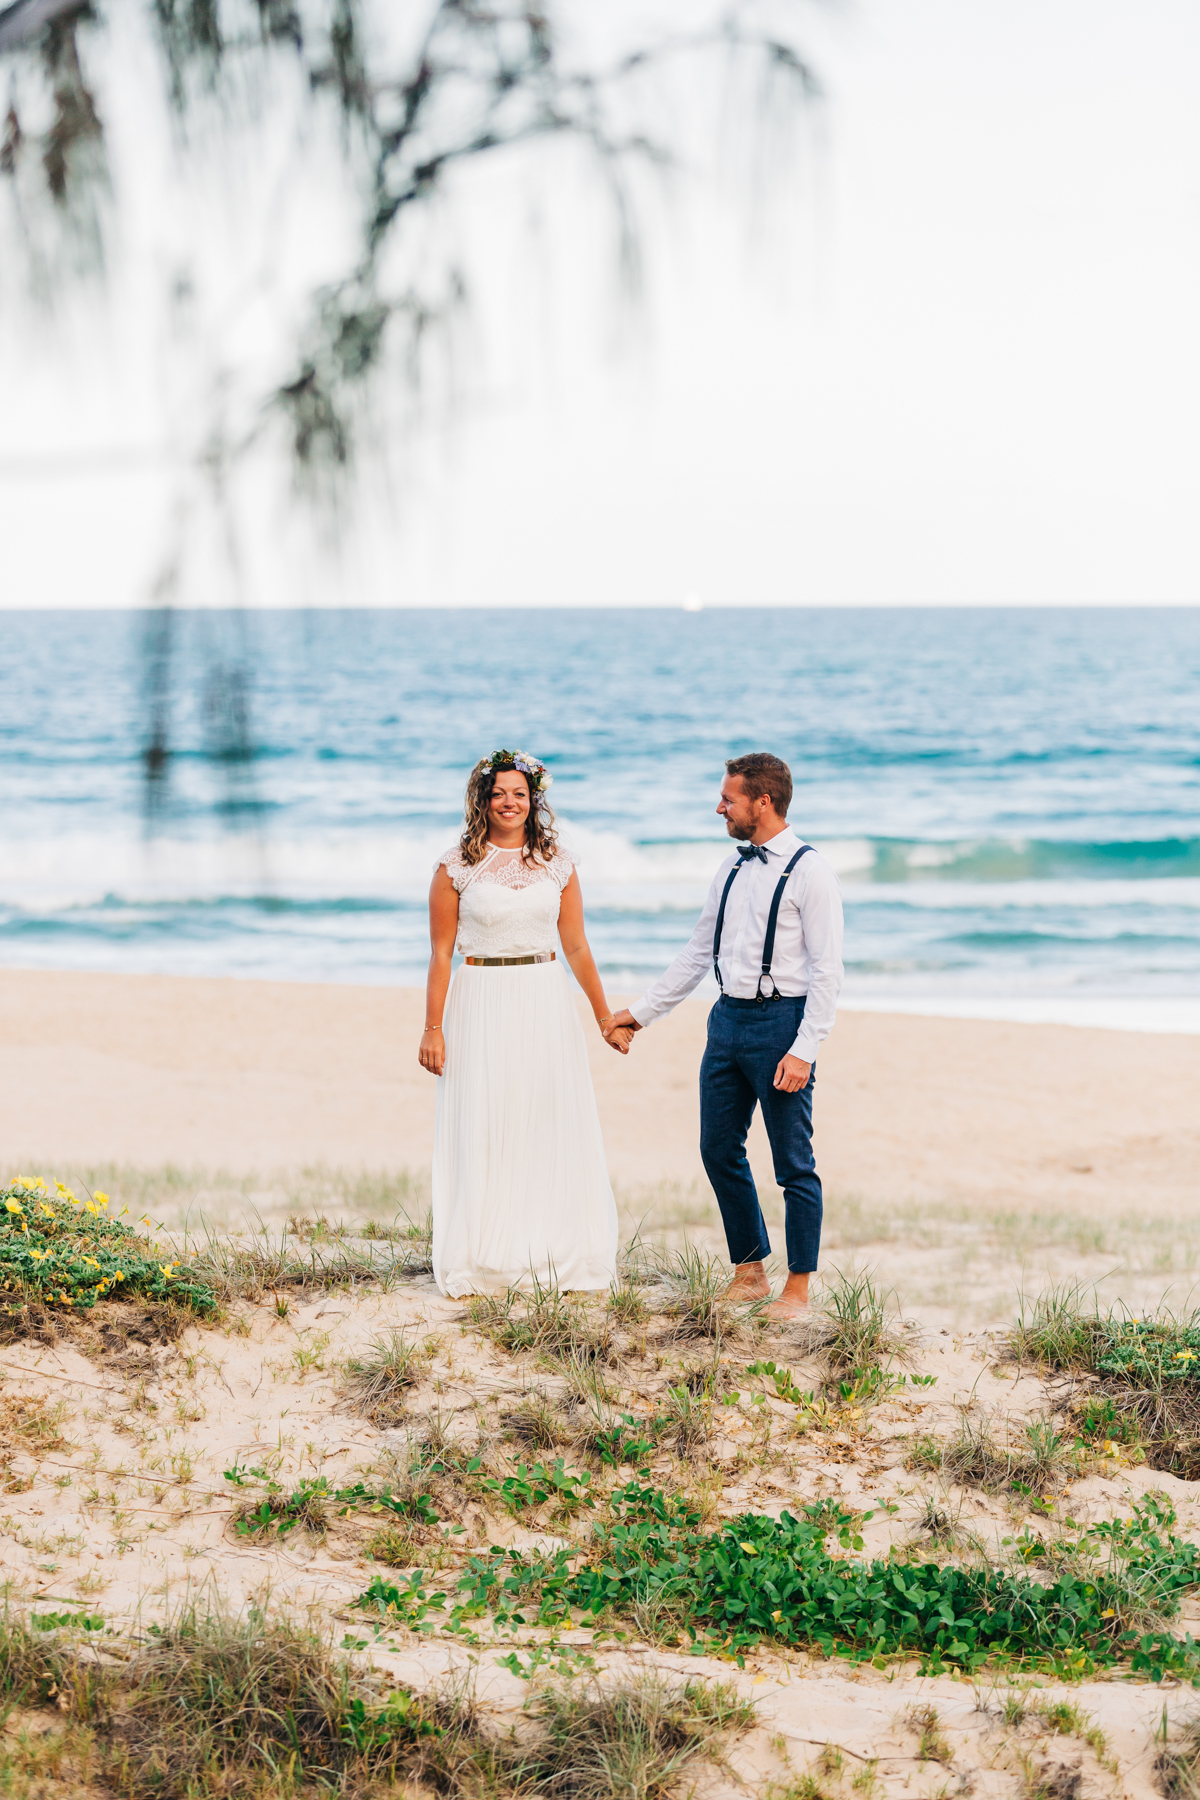 Sunshine-Beach-Wedding-Photographers-Lindy-Yewen 93.jpg